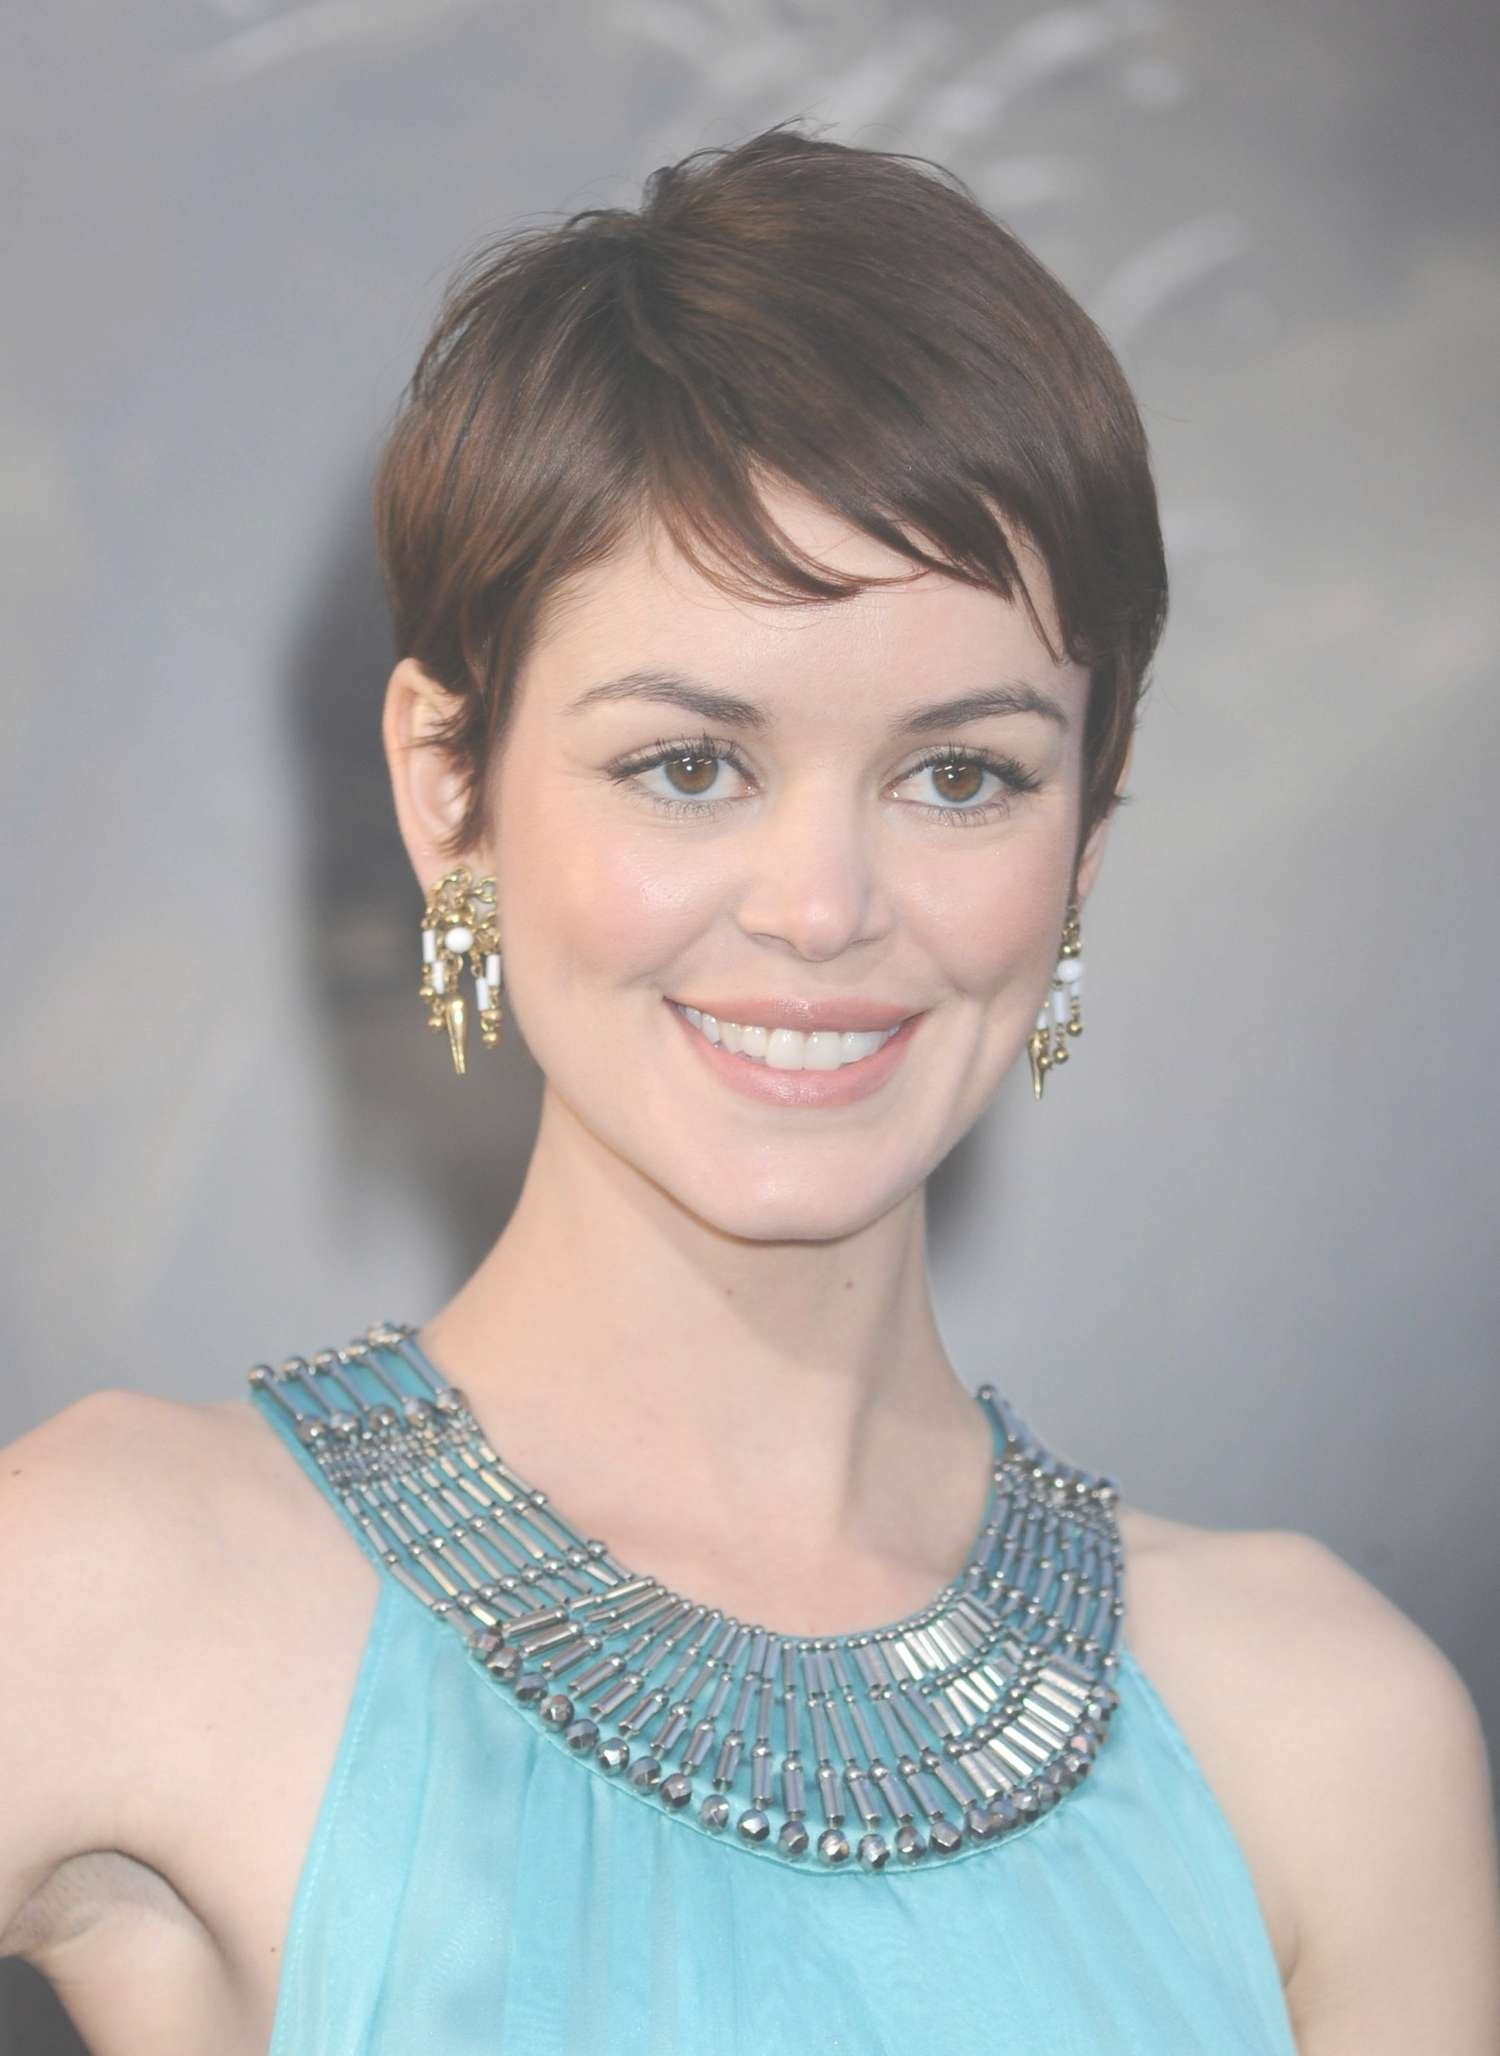 19 Cute Celebrity Haircuts To Consider | Glamour Throughout Newest Actress Pixie Hairstyles (View 1 of 15)